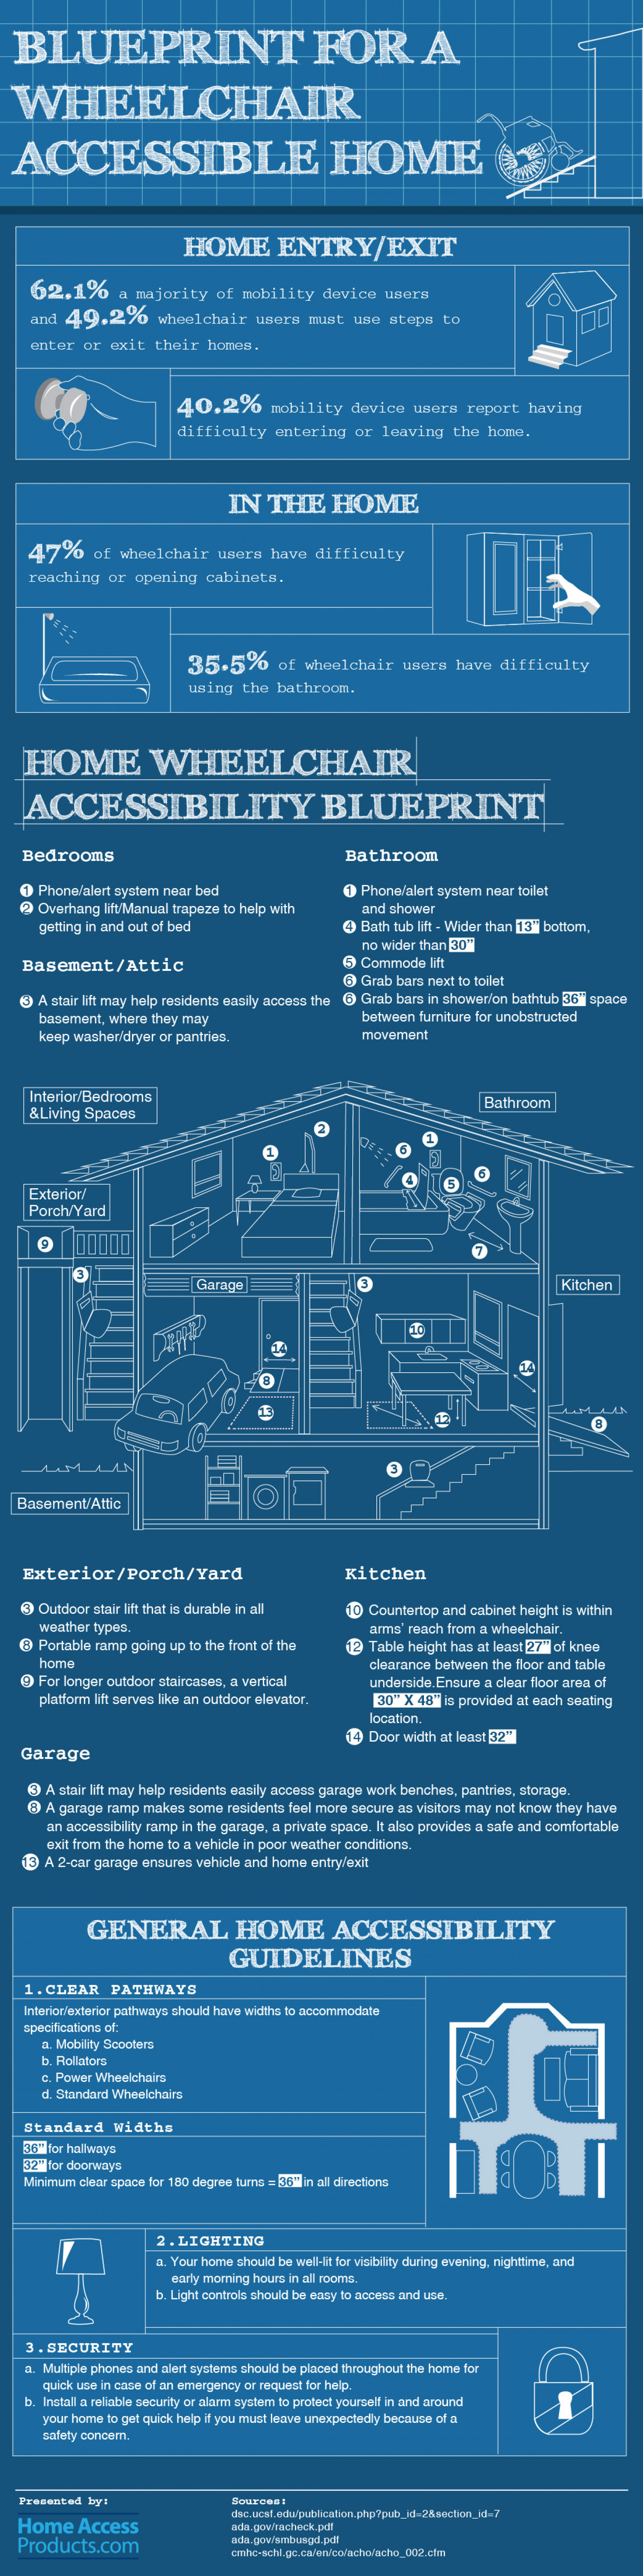 Blueprint for a Wheelchair Accessible Home Infographic